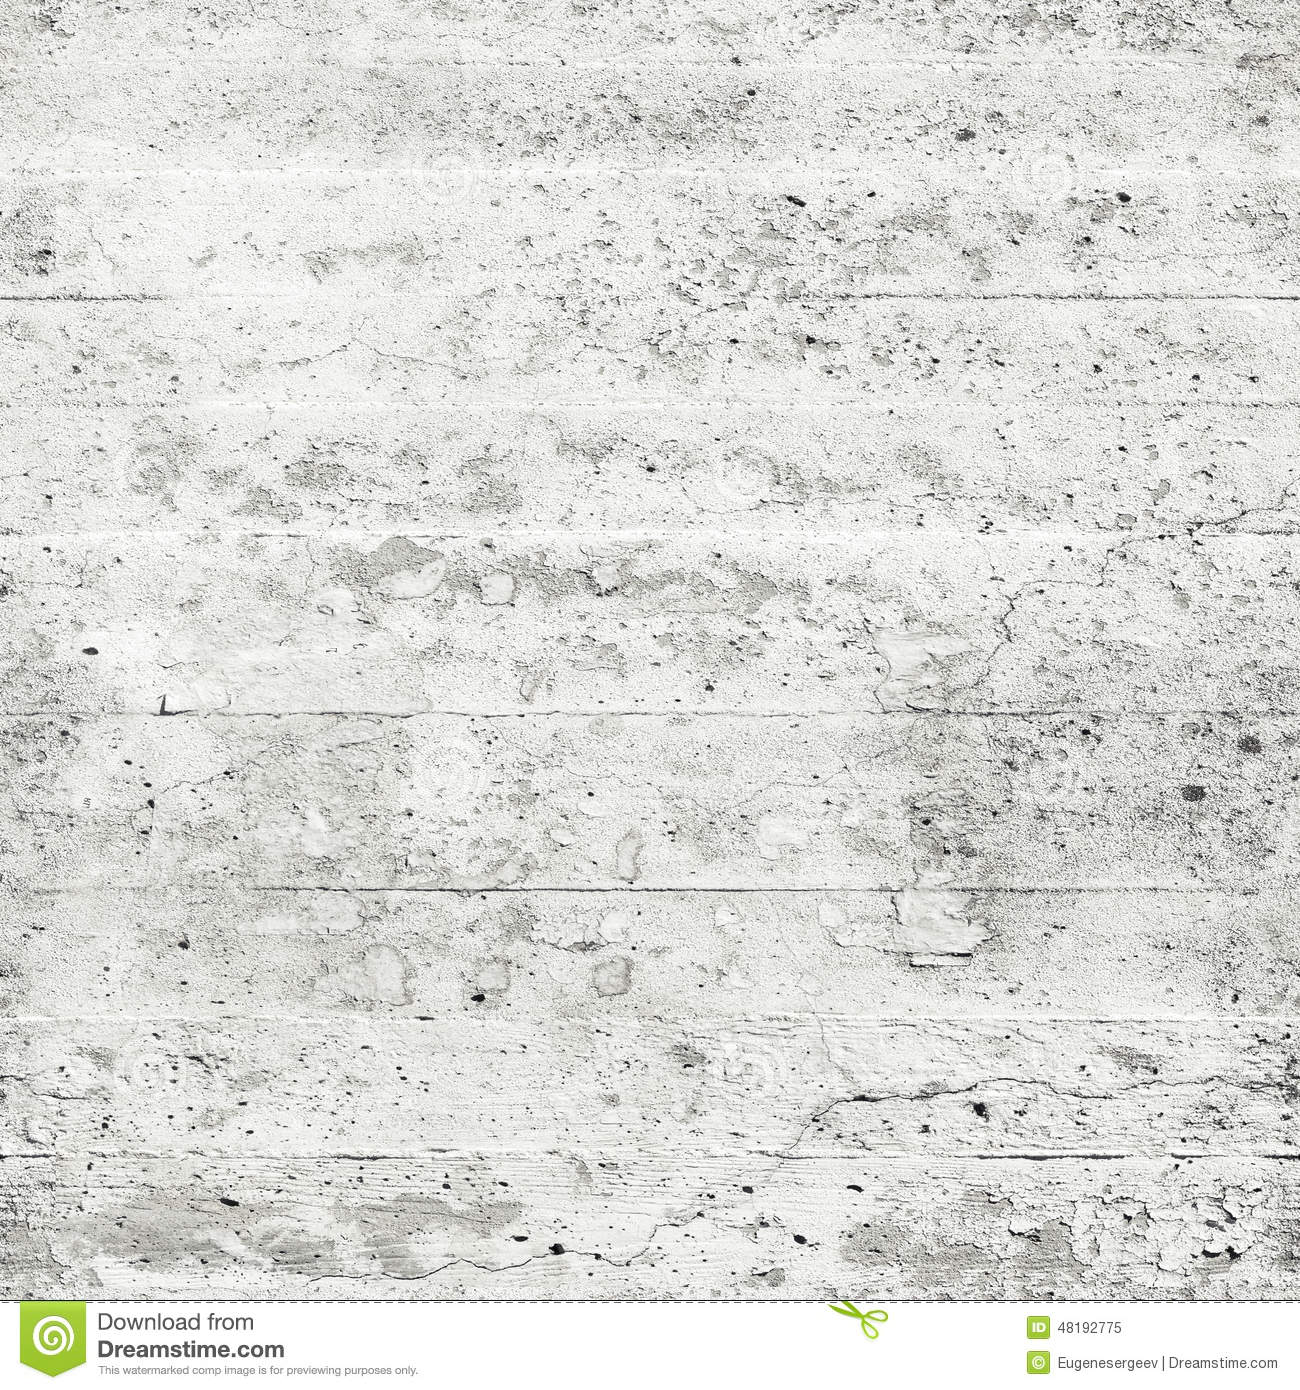 White Concrete Wall : Old white concrete wall seamless background texture stock